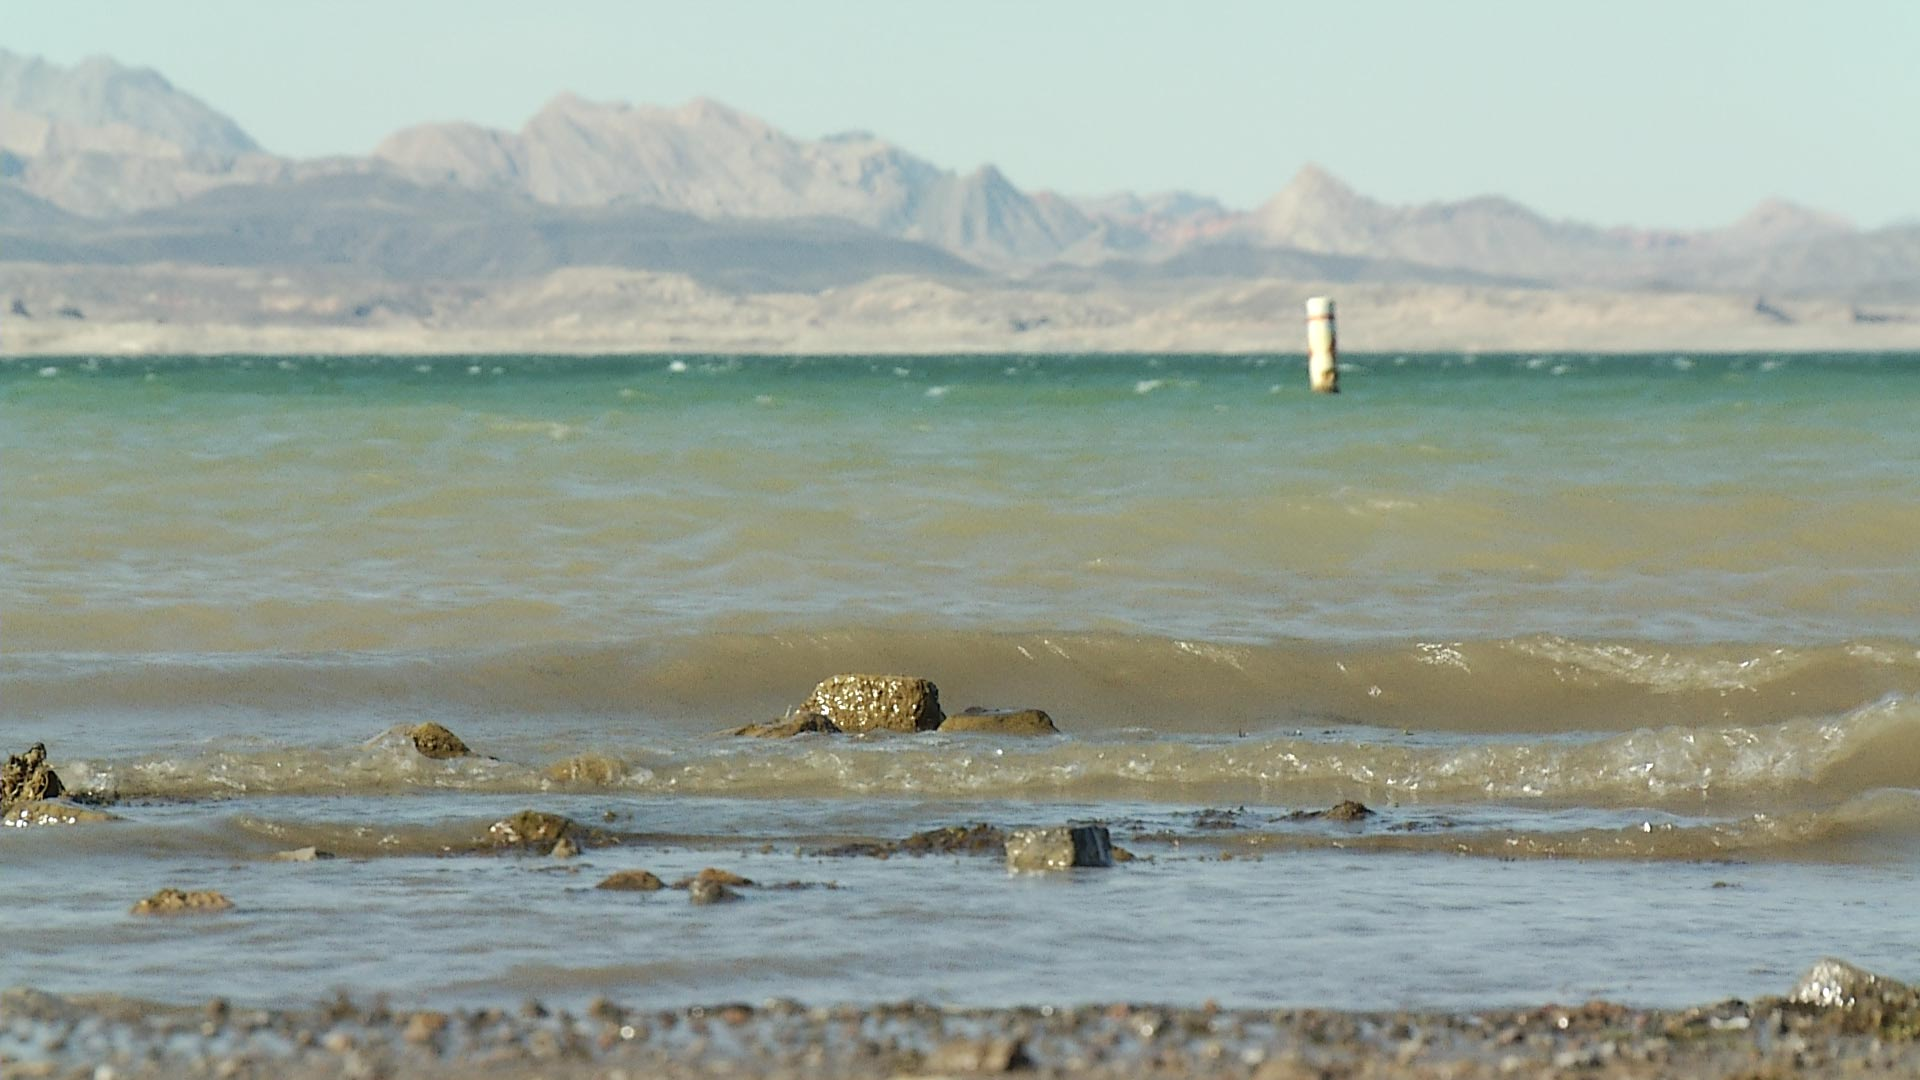 Officials say conservation efforts have kept Lake Mead water levels stable.